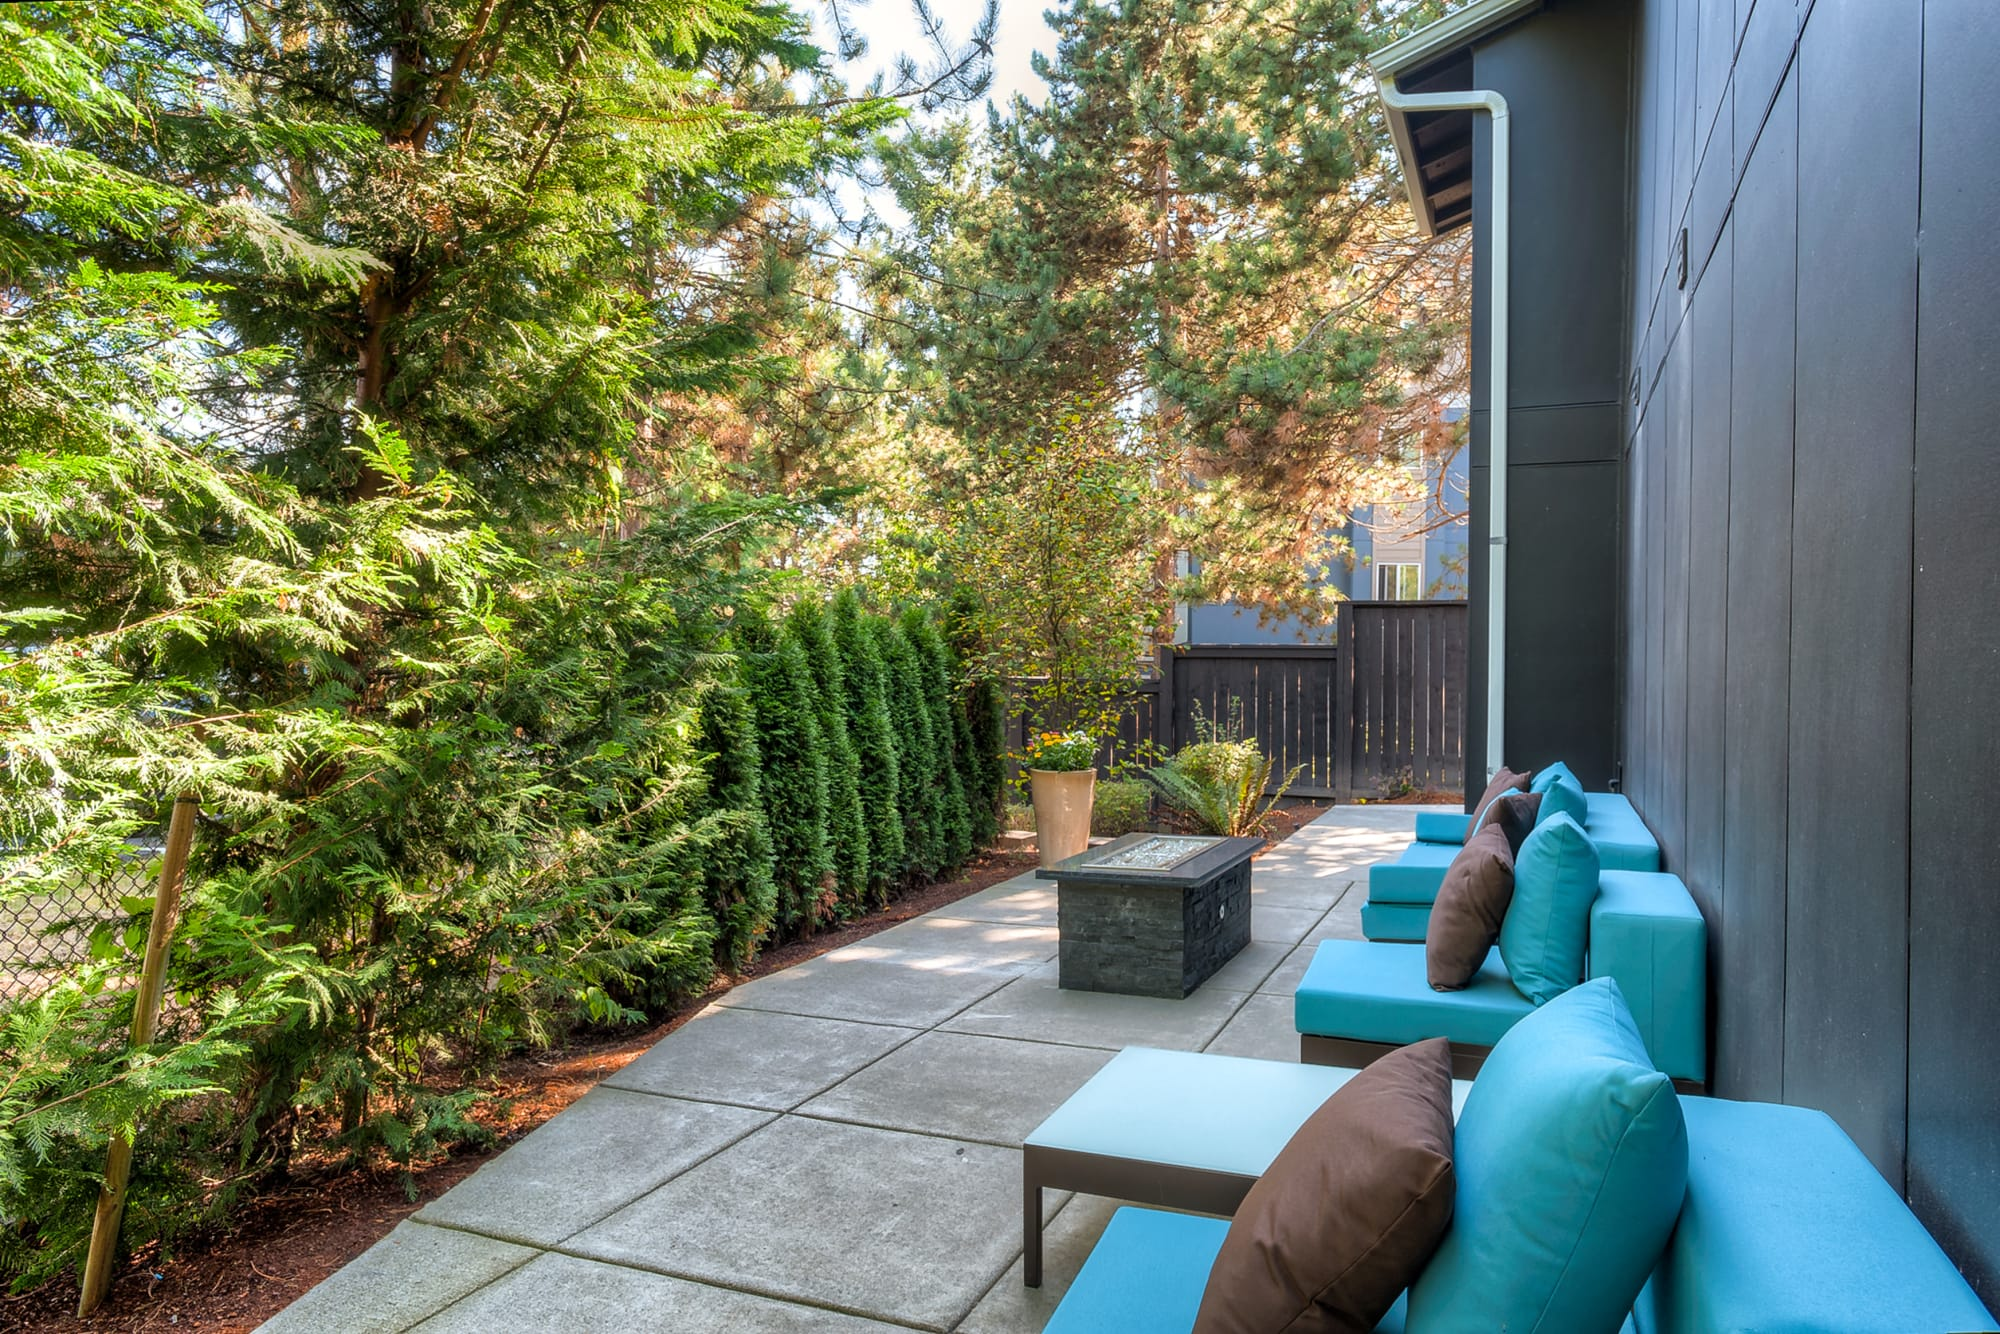 The fire pit lounge area at Karbon Apartments in Newcastle, Washington